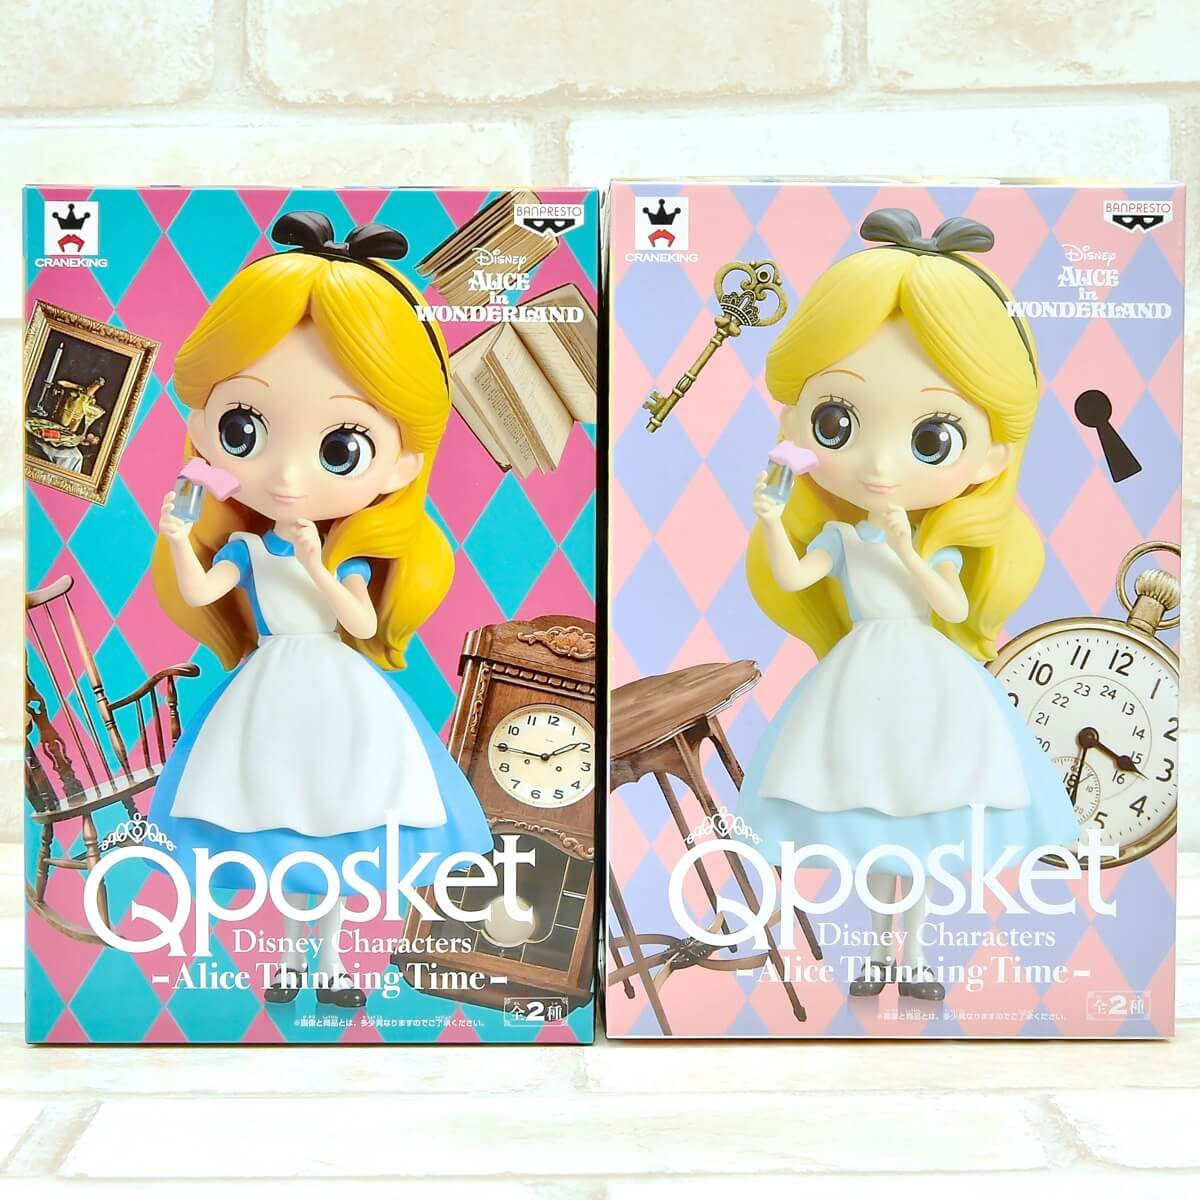 バンプレスト「Q posket Disney Characters -Alice Thinking Time-」パッケージ